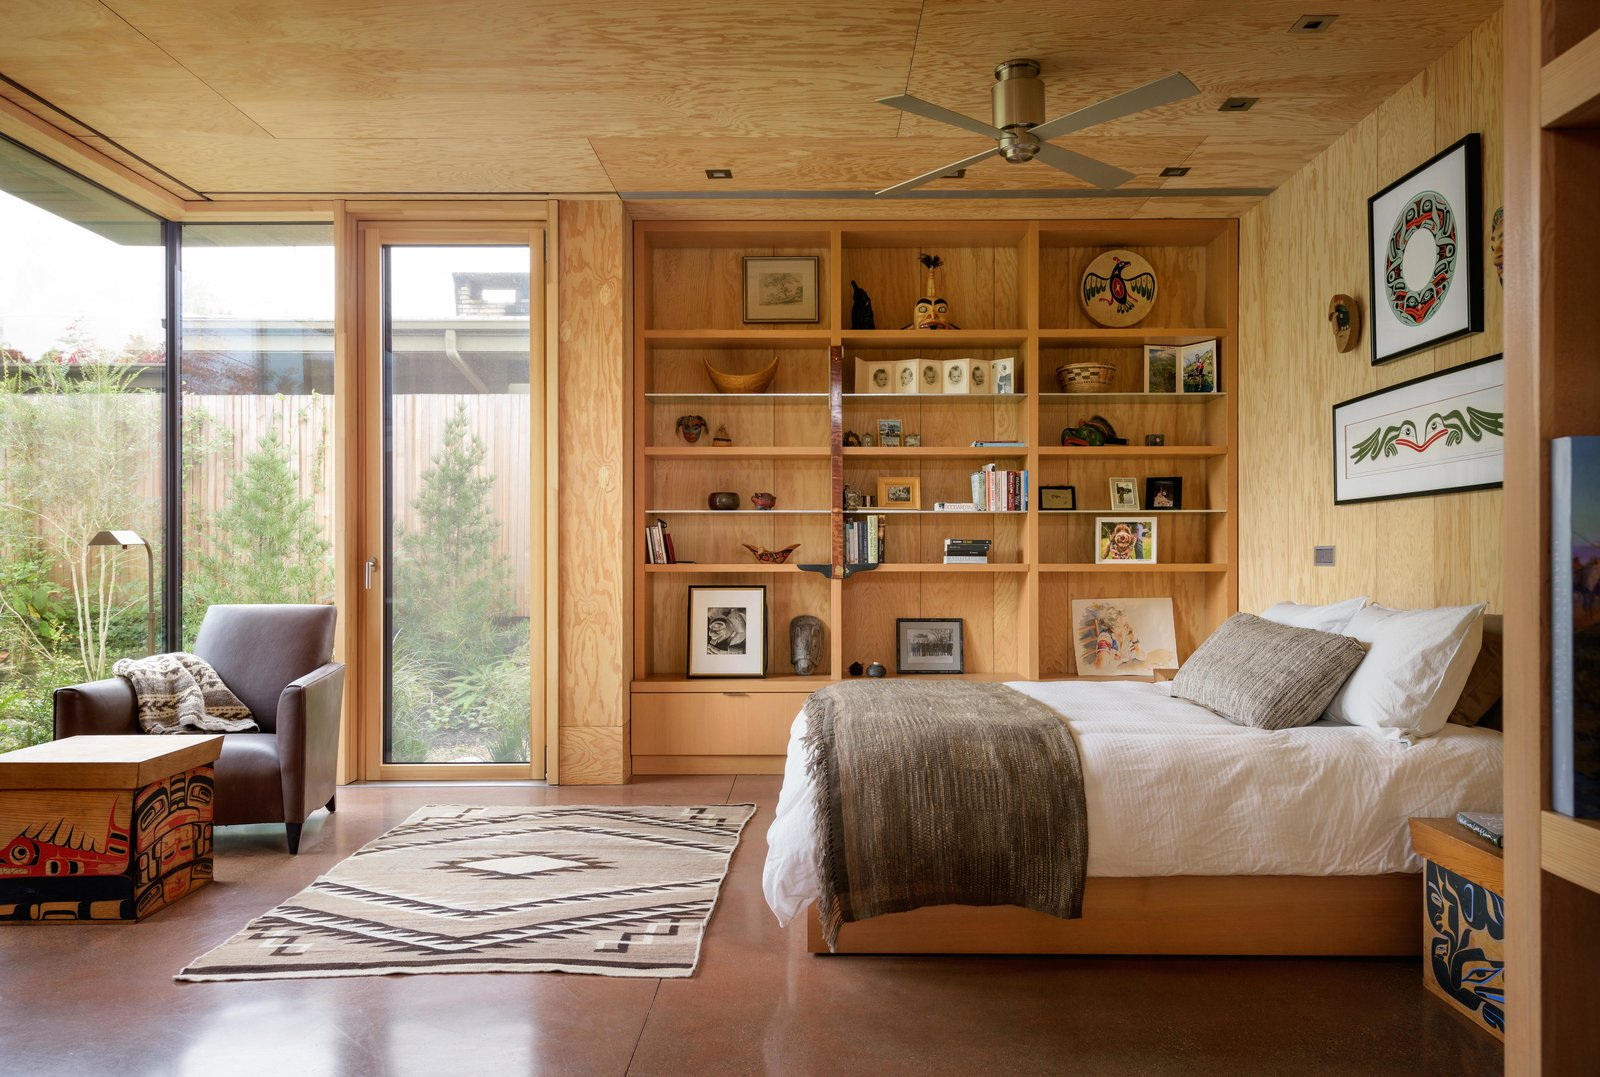 Bedroom, Concrete Floor, Storage, Shelves, Bed, Night Stands, Bookcase, and Chair City Cabin | Olson Kundig  Photo 11 of 13 in Immersed in Nature, This City Cabin Targets Net-Zero Energy from City Cabin